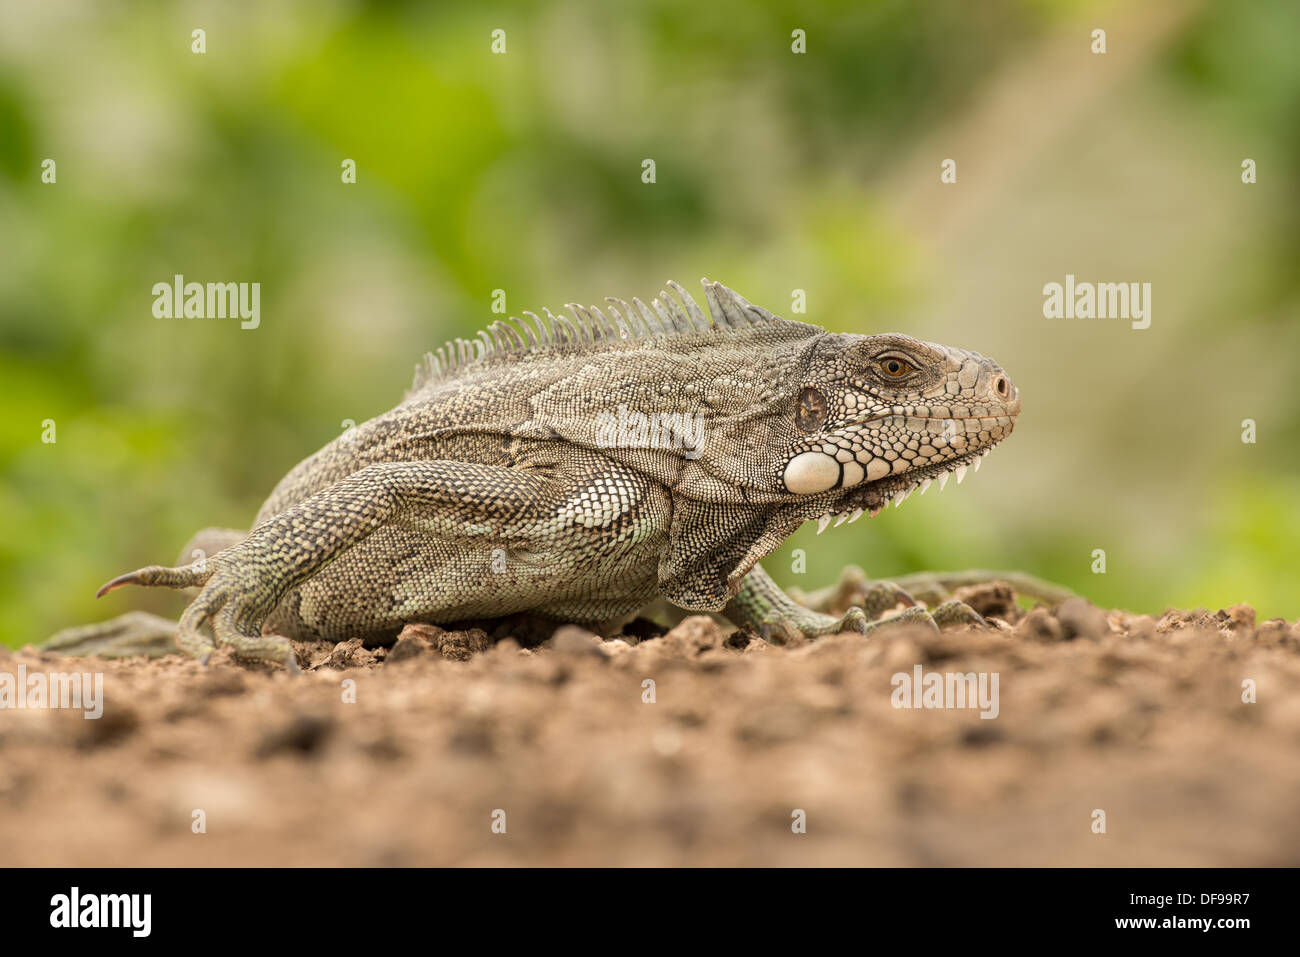 Stock photo of a green iguana posed on a beach in the Pantanal. Stock Photo